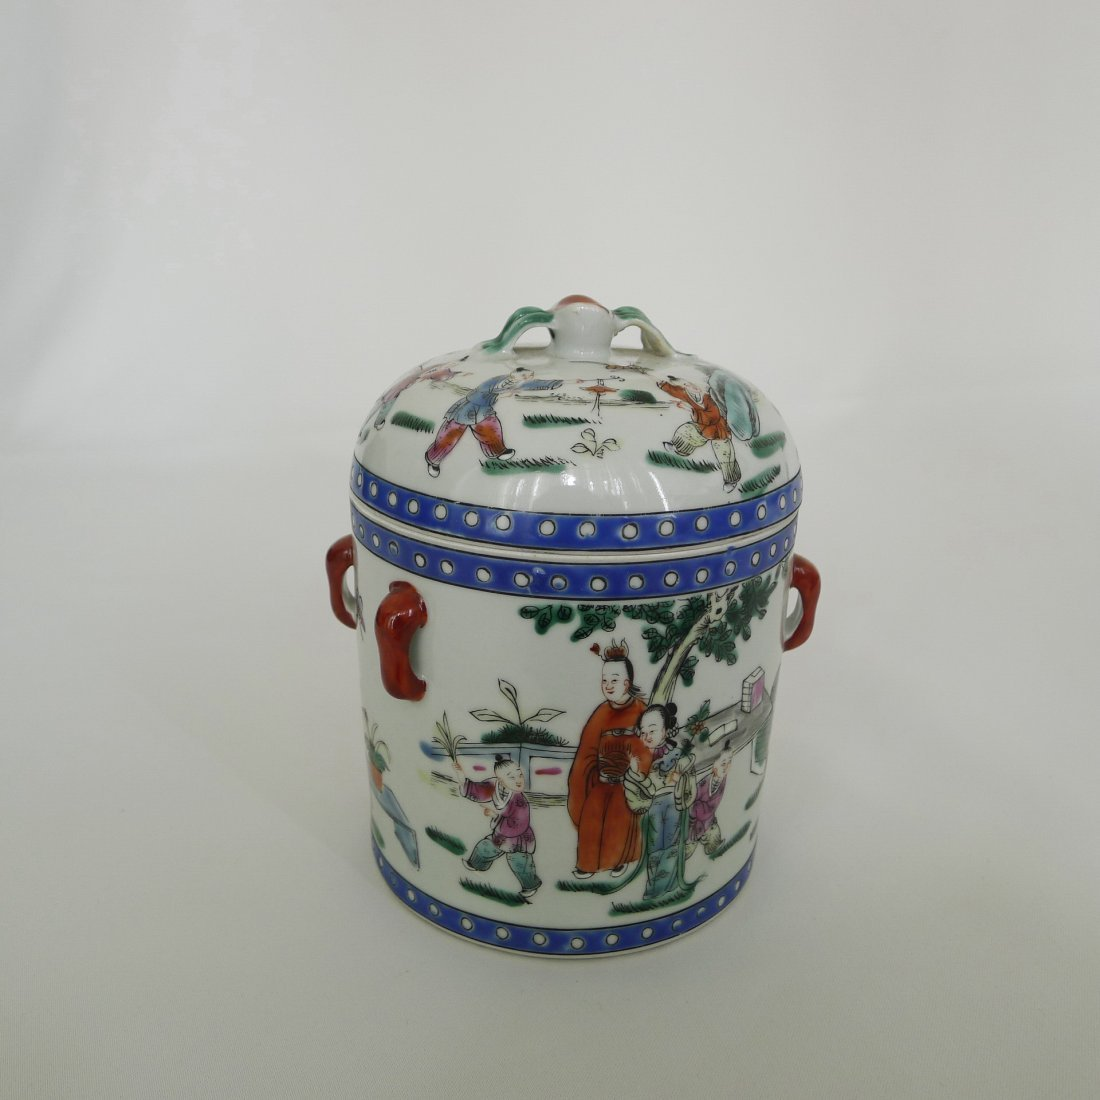 CHINESE FAMILLE ROSE FIGURE STORY JAR